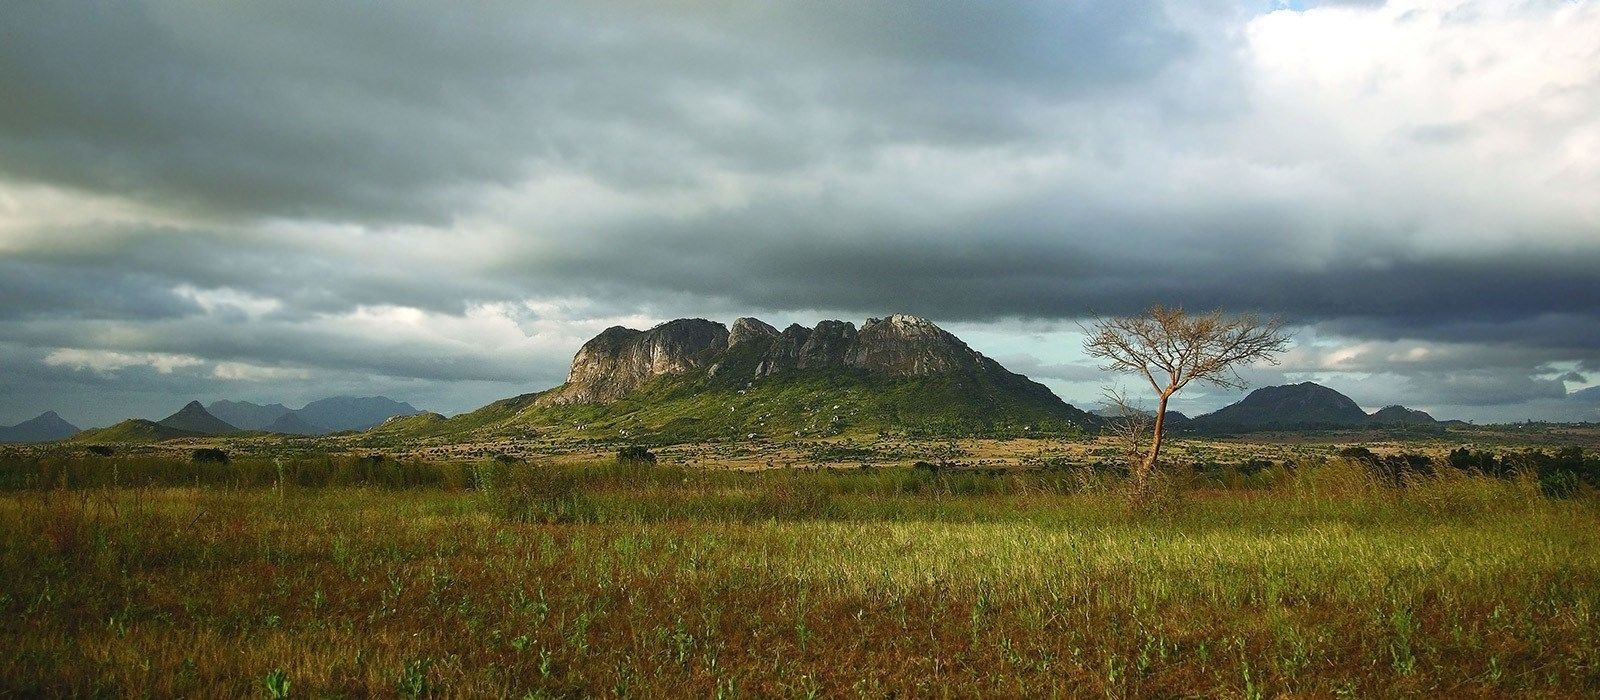 Destination Mulanje Malawi